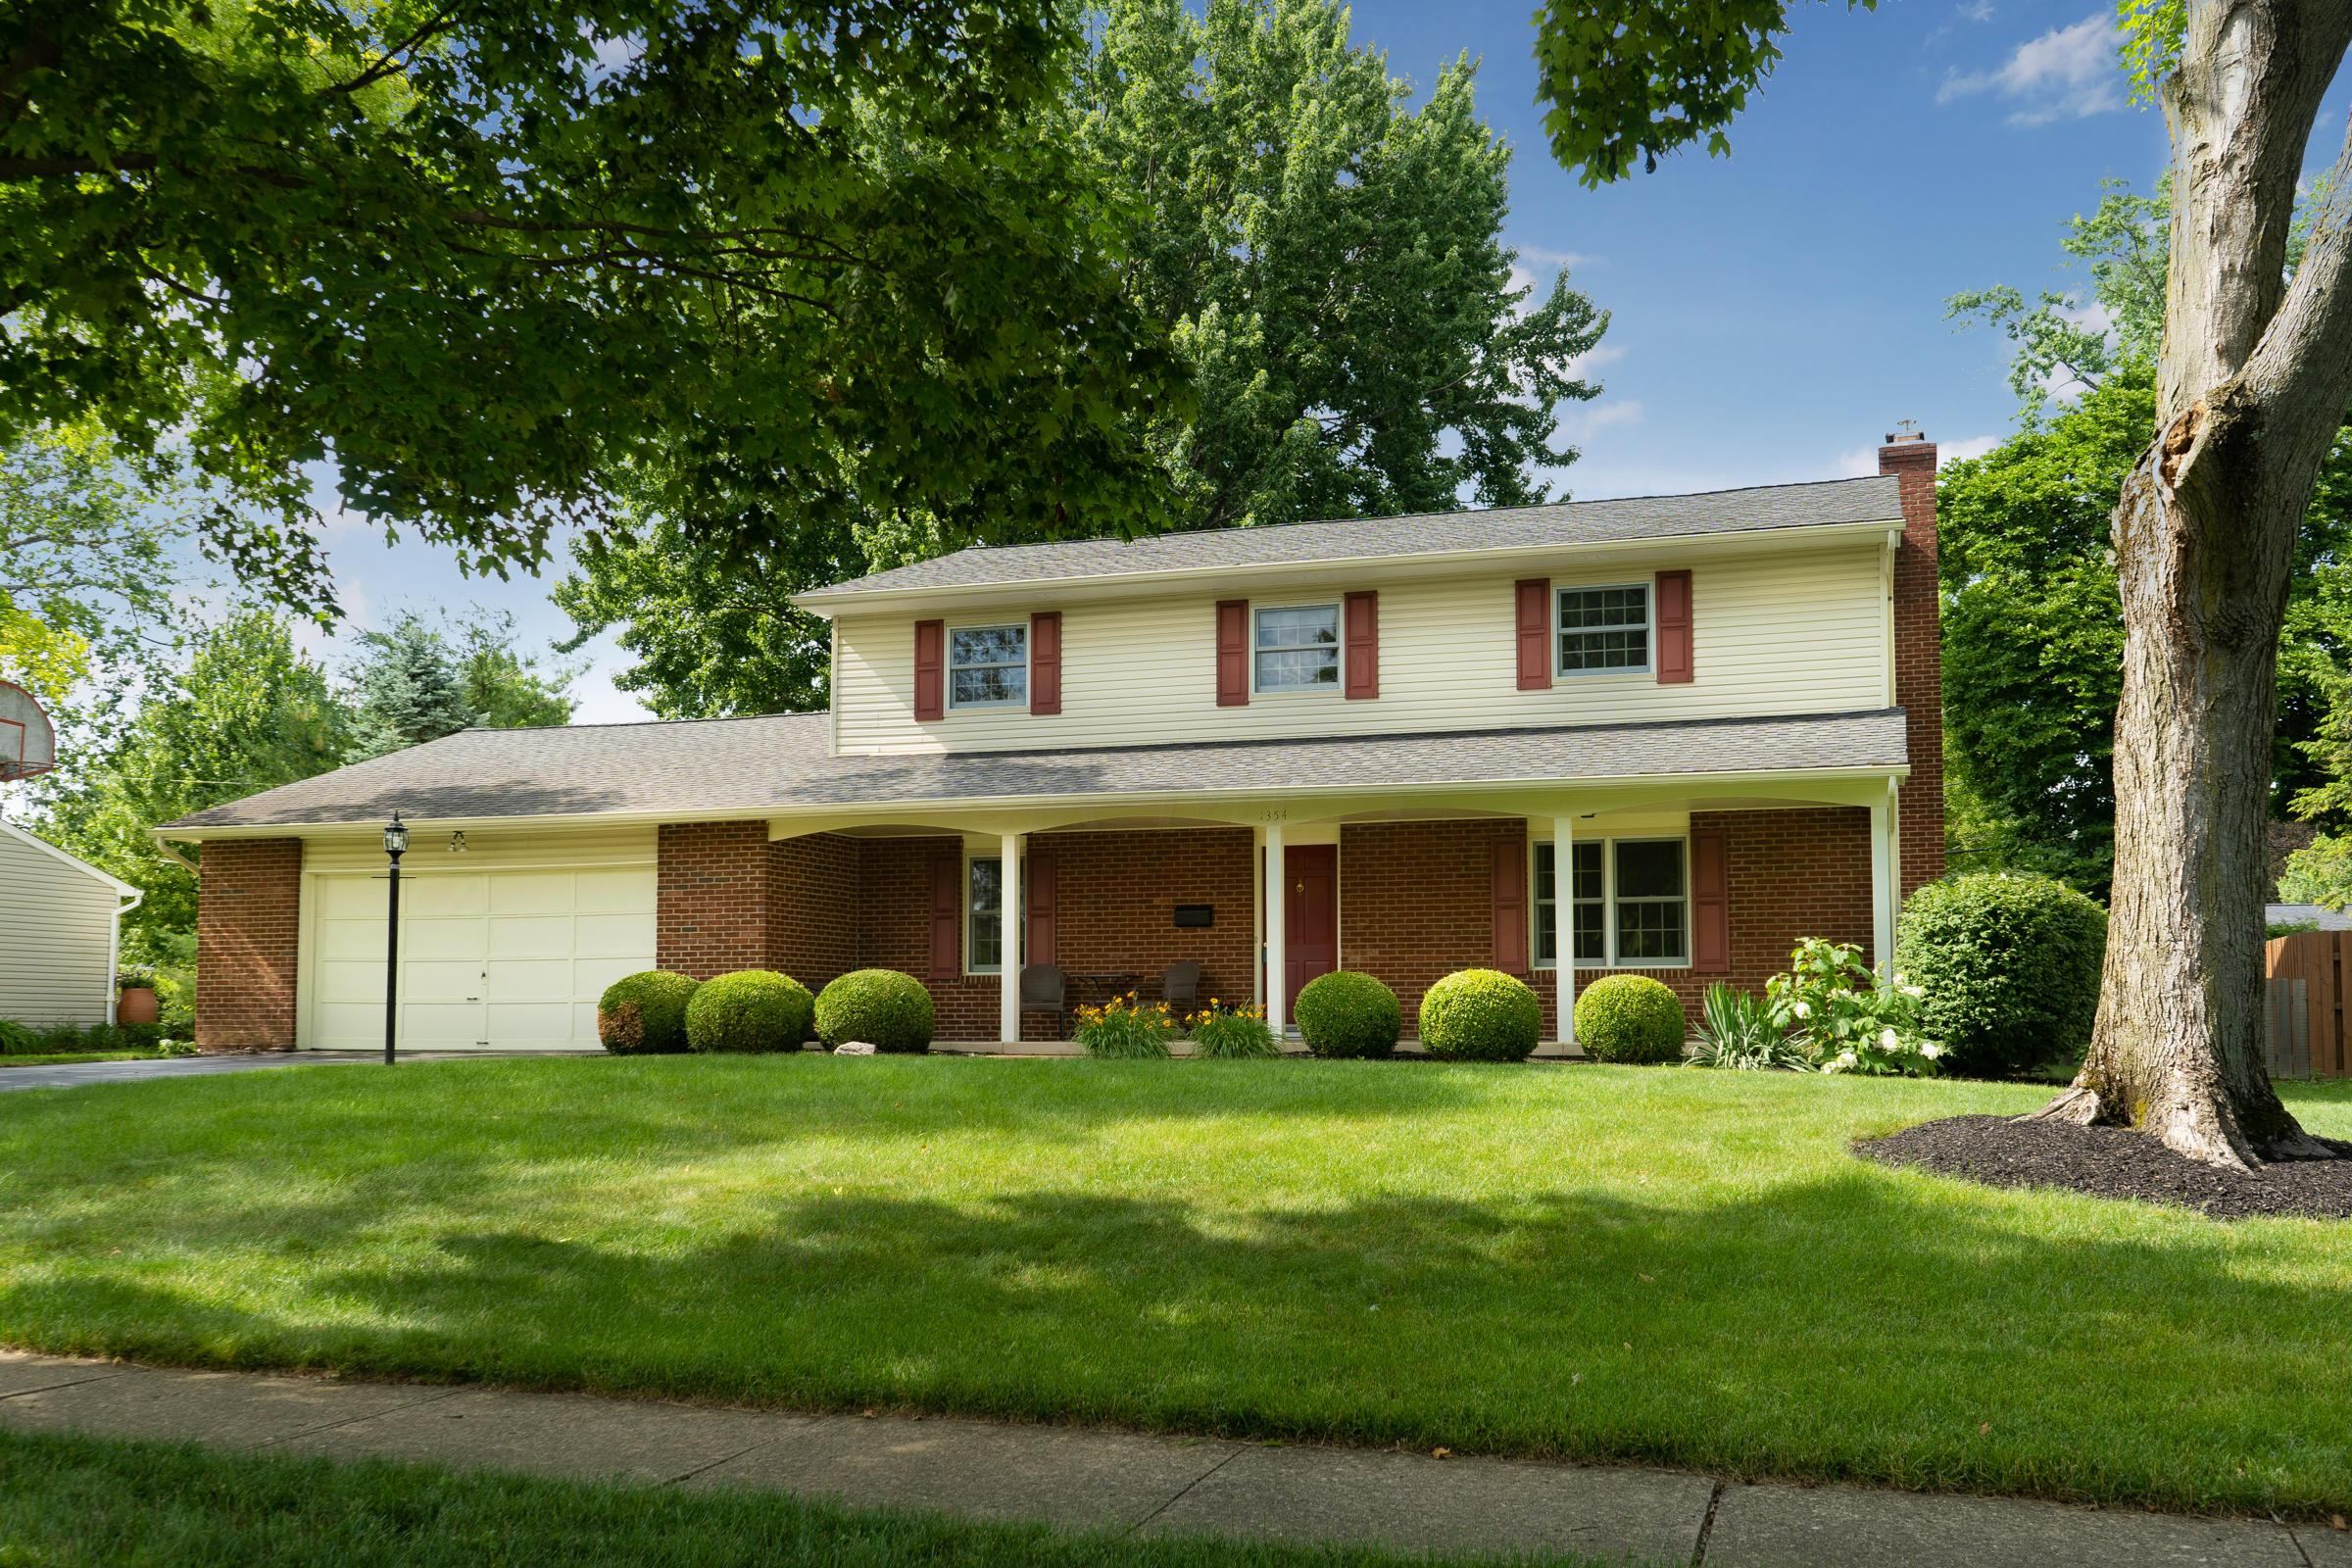 1354 Darcann Drive, Columbus, Ohio 43220, 4 Bedrooms Bedrooms, ,3 BathroomsBathrooms,Residential,For Sale,Darcann,220020101